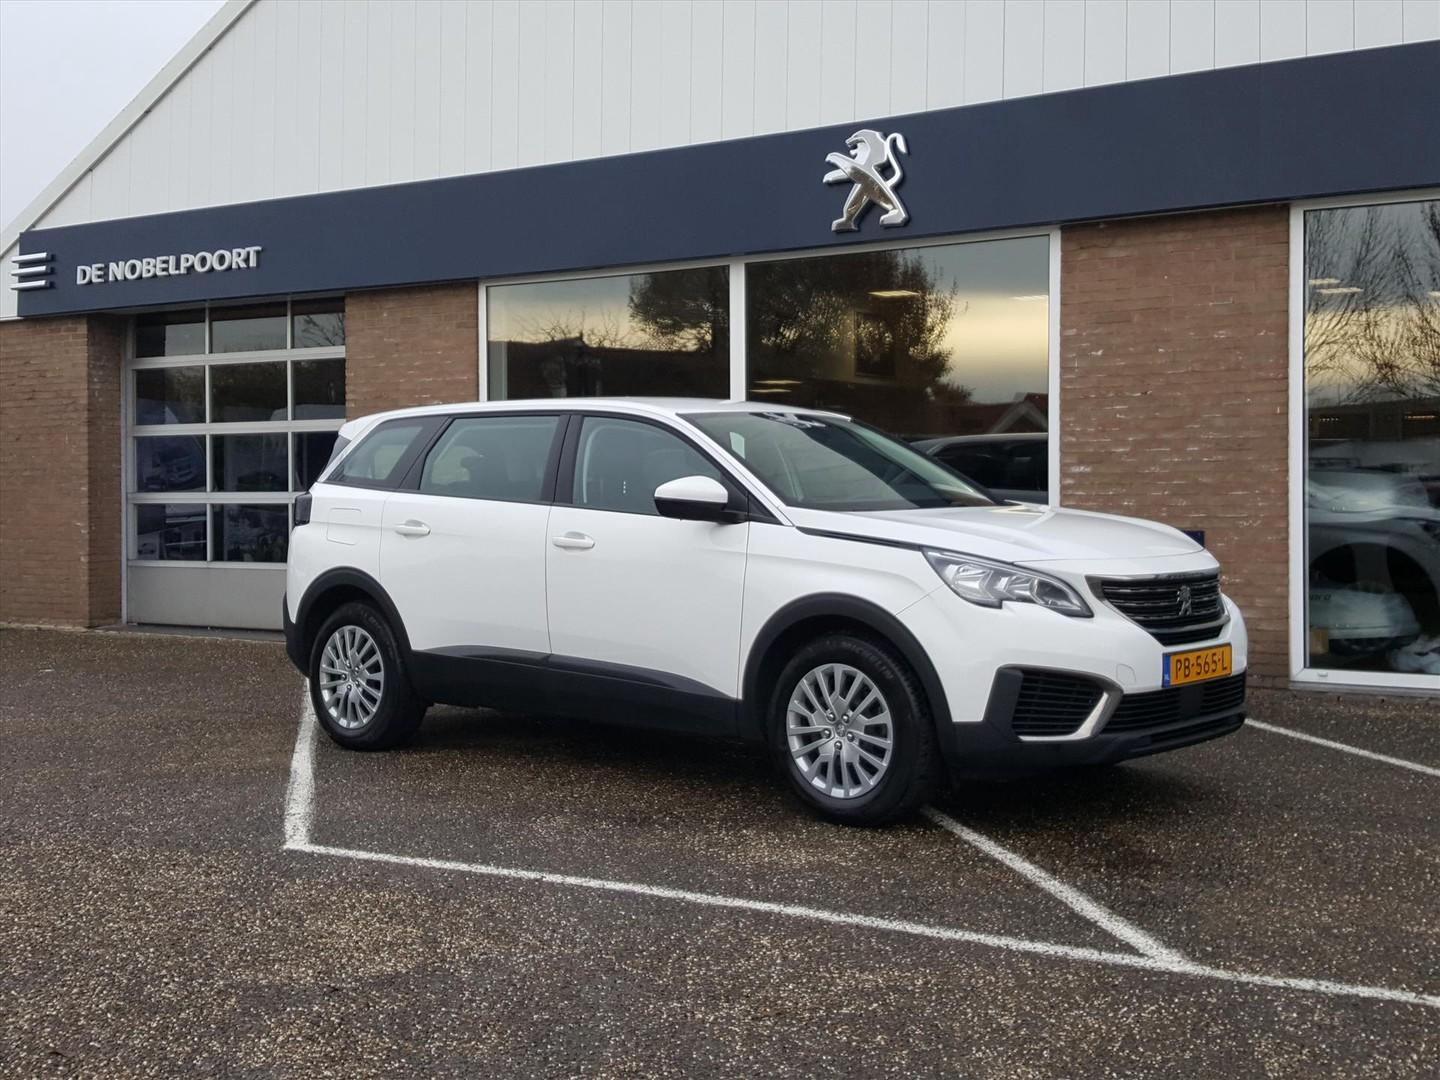 Peugeot 5008 1.2 puretech 130pk s&s access 7persoons airco cruise control phulp trekhaak bt